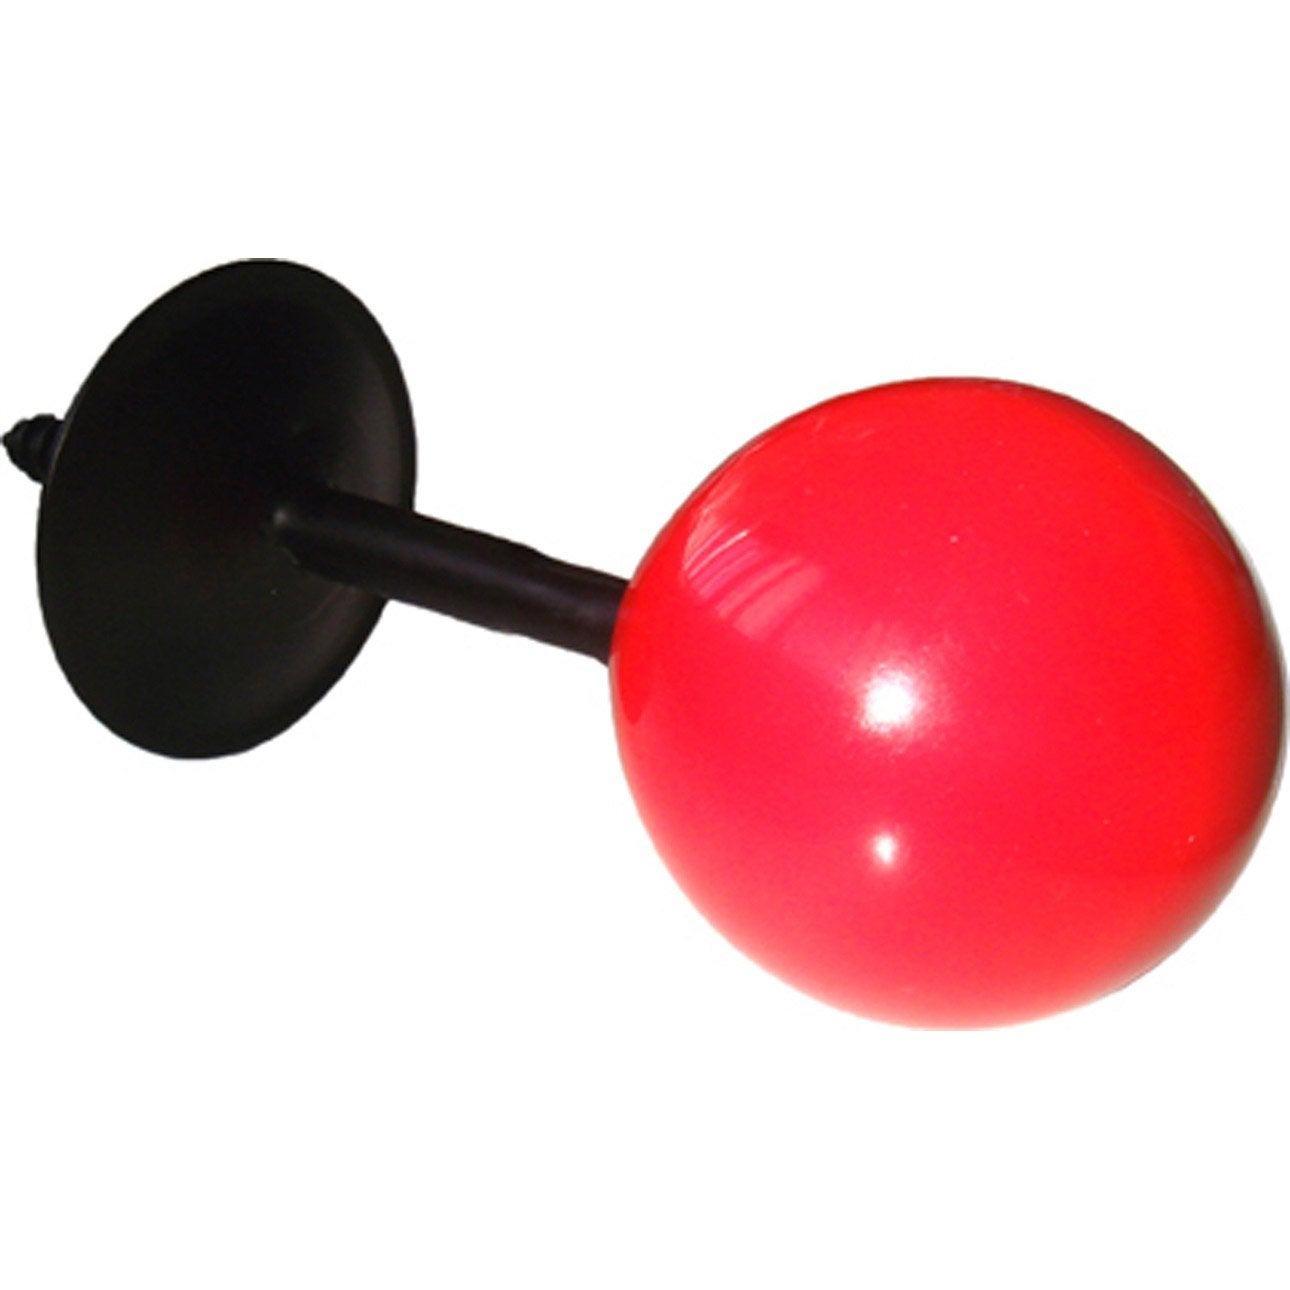 Portemanteau boule m tal 1 t te rouge leroy merlin for Boule lumineuse leroy merlin